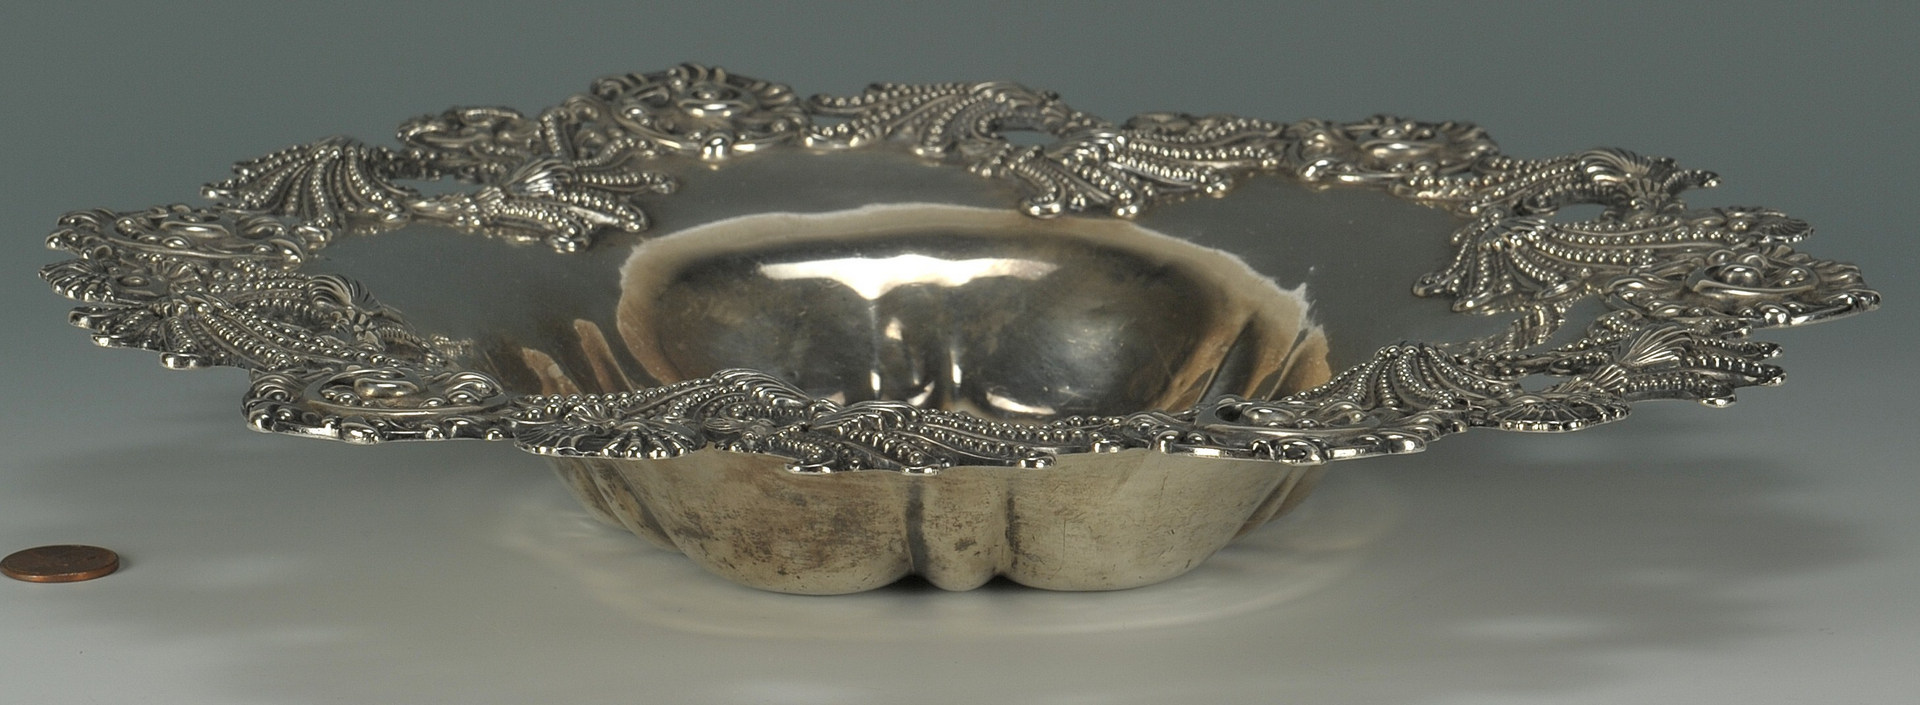 Lot 424: Dominick & Haff sterling bowl, seashell design